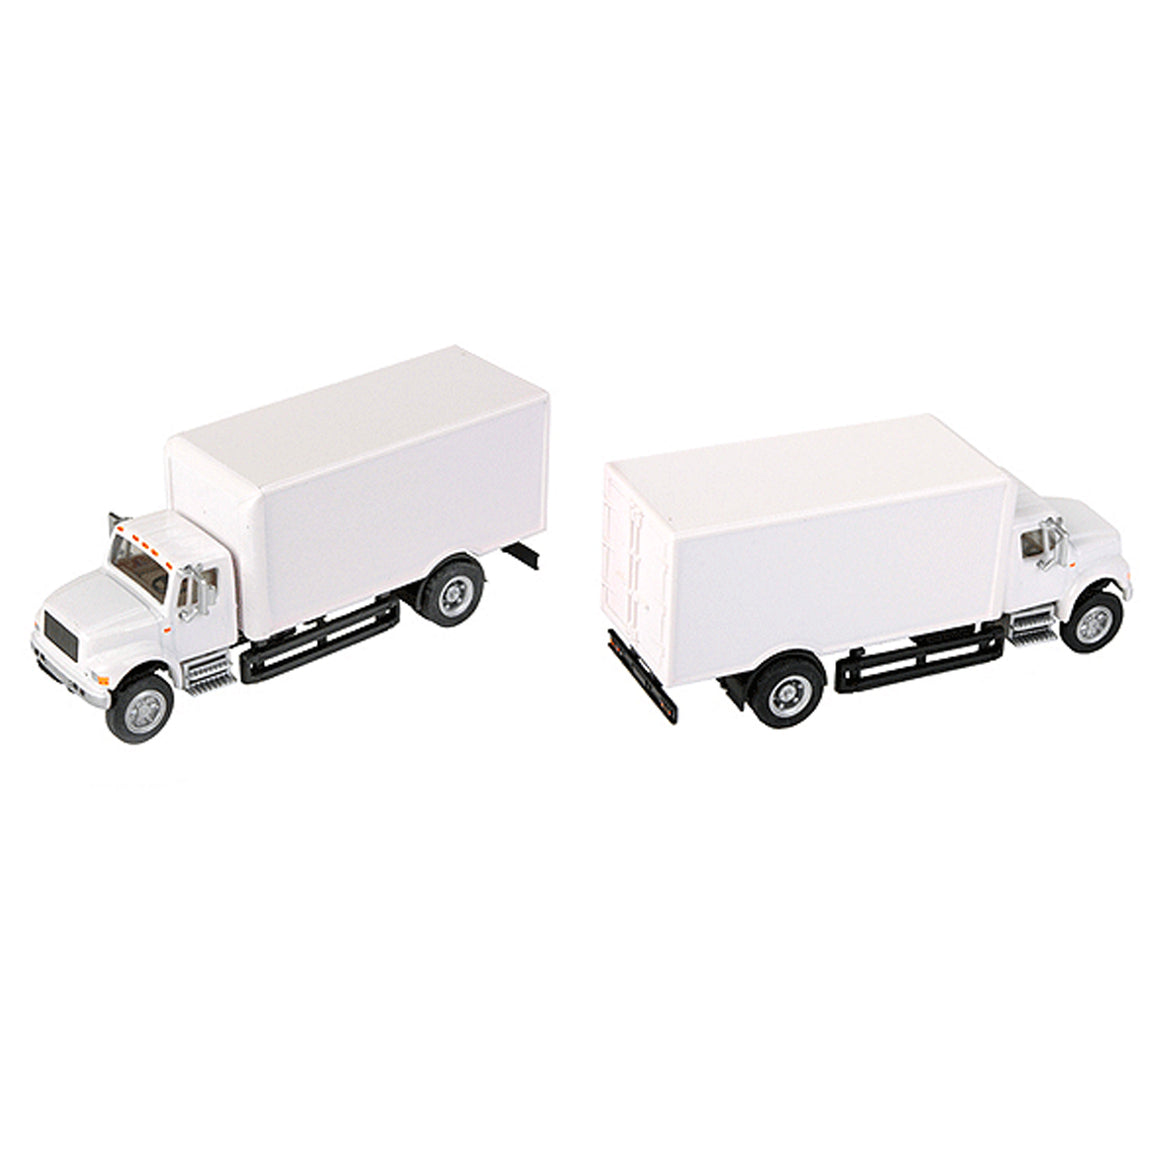 HO Scale: International 4900 Single Axle Box Van - White